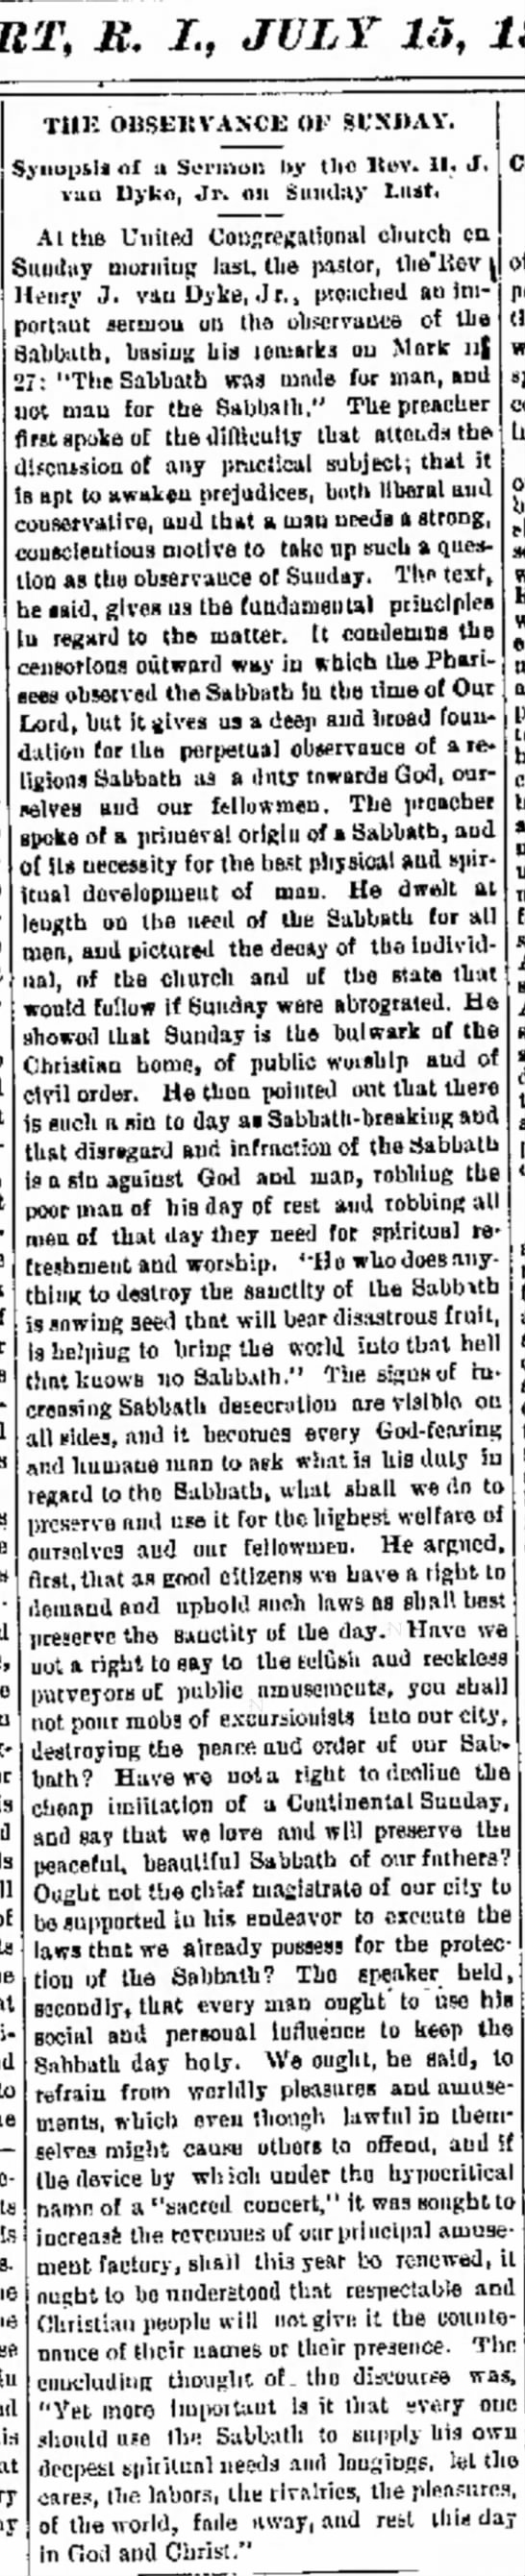 7-15-1882 Newport RI pastor tirade-vile excursionists -